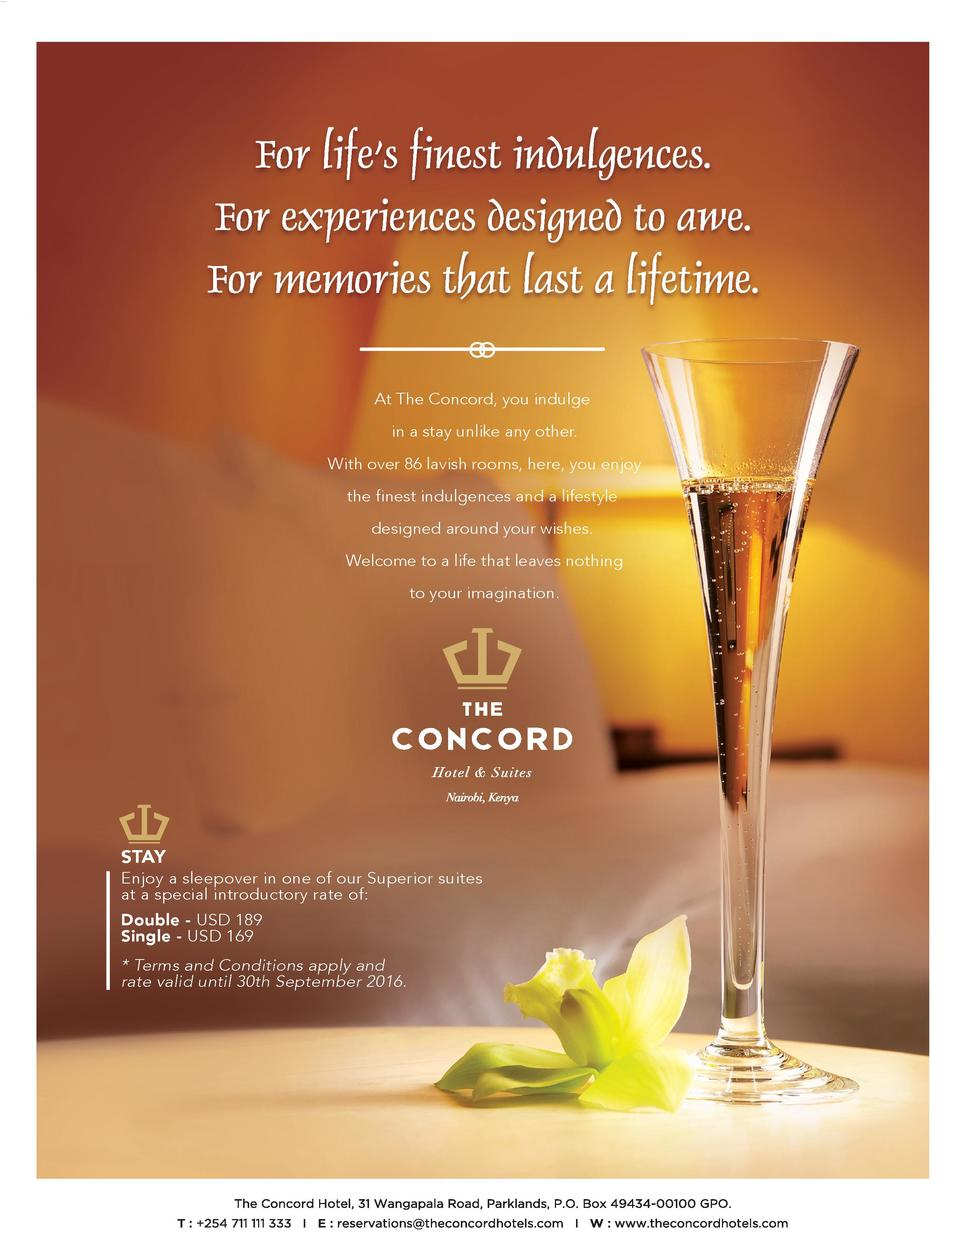 At The Concord, you indulge in a stay unlike any other. With over 86 lavish rooms, here, you enjoy the finest indulgences ...